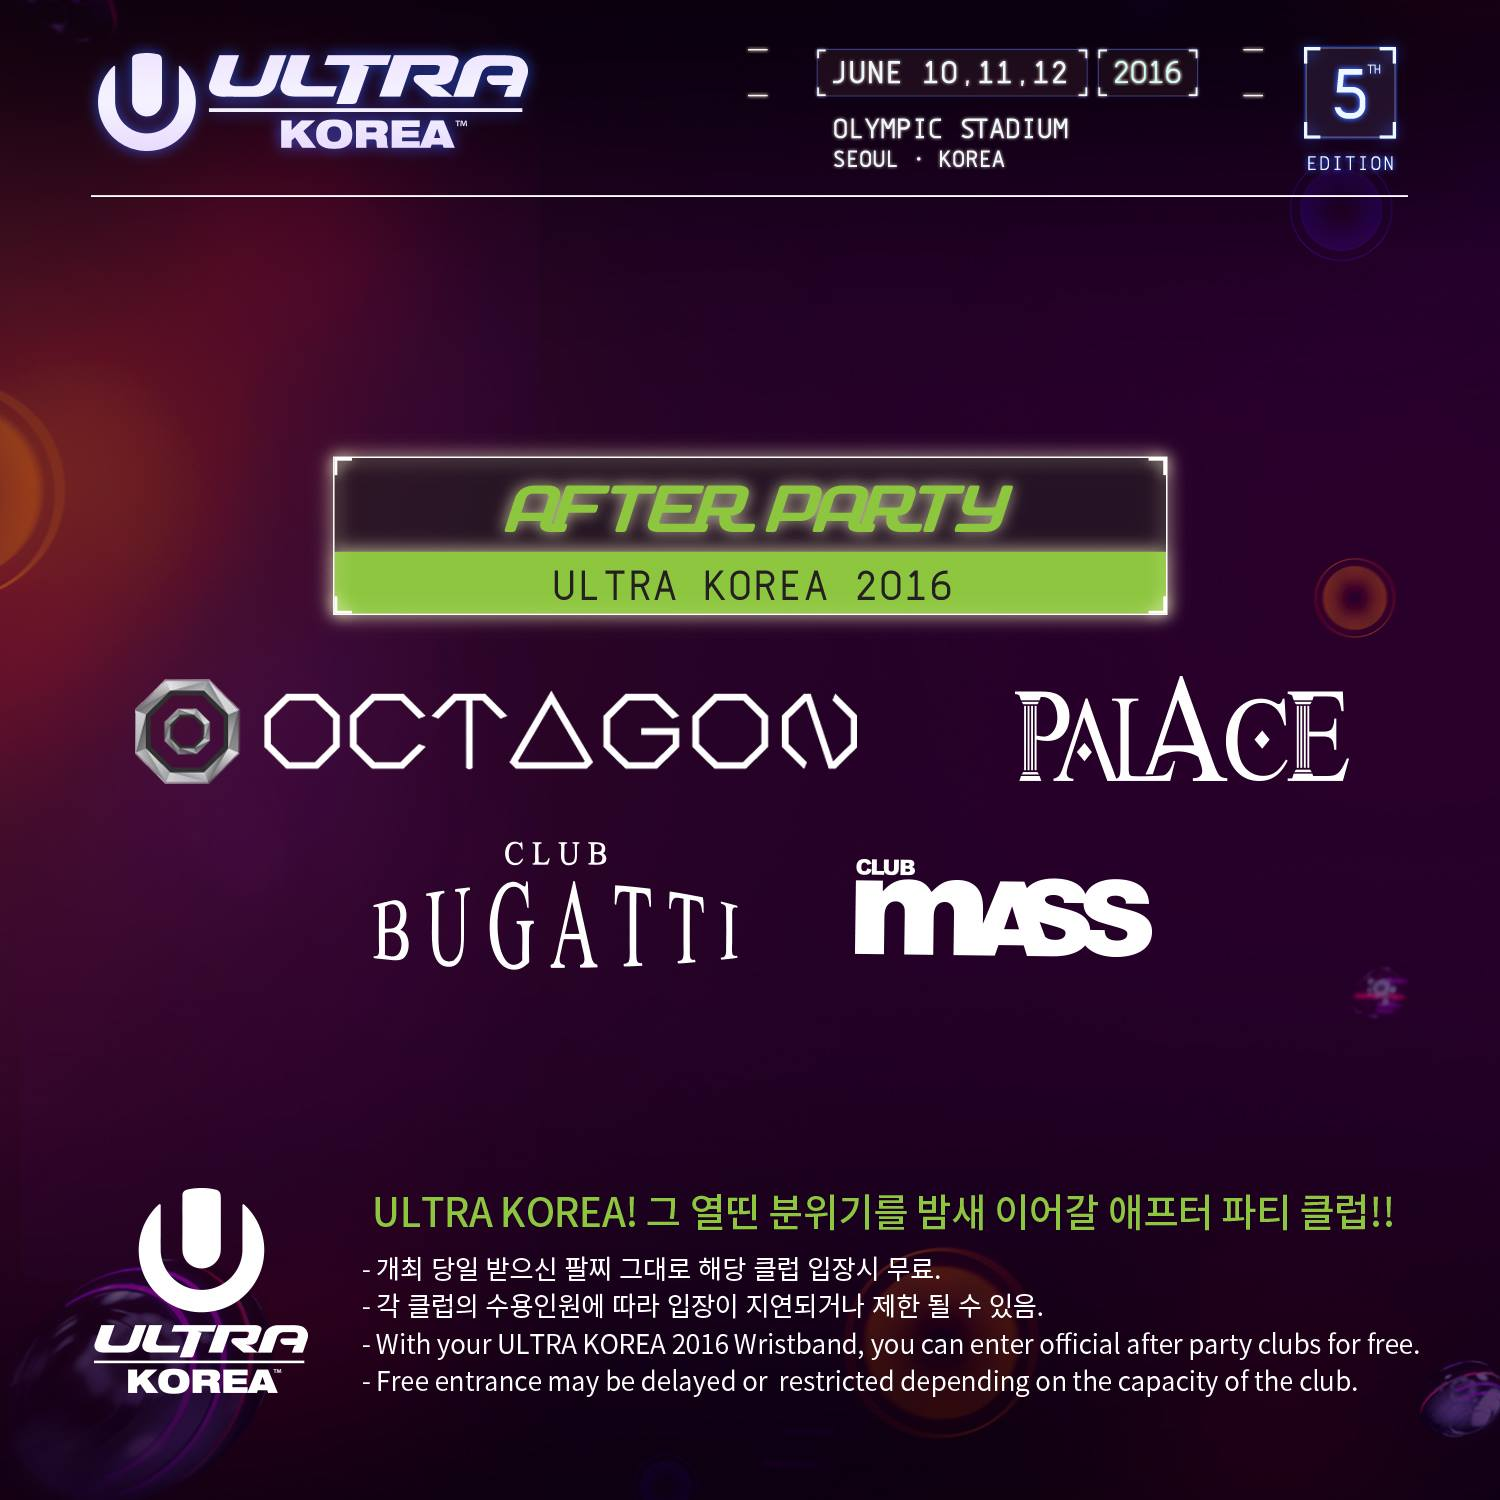 ULTRA KOREA 2016 AFTER PARTY